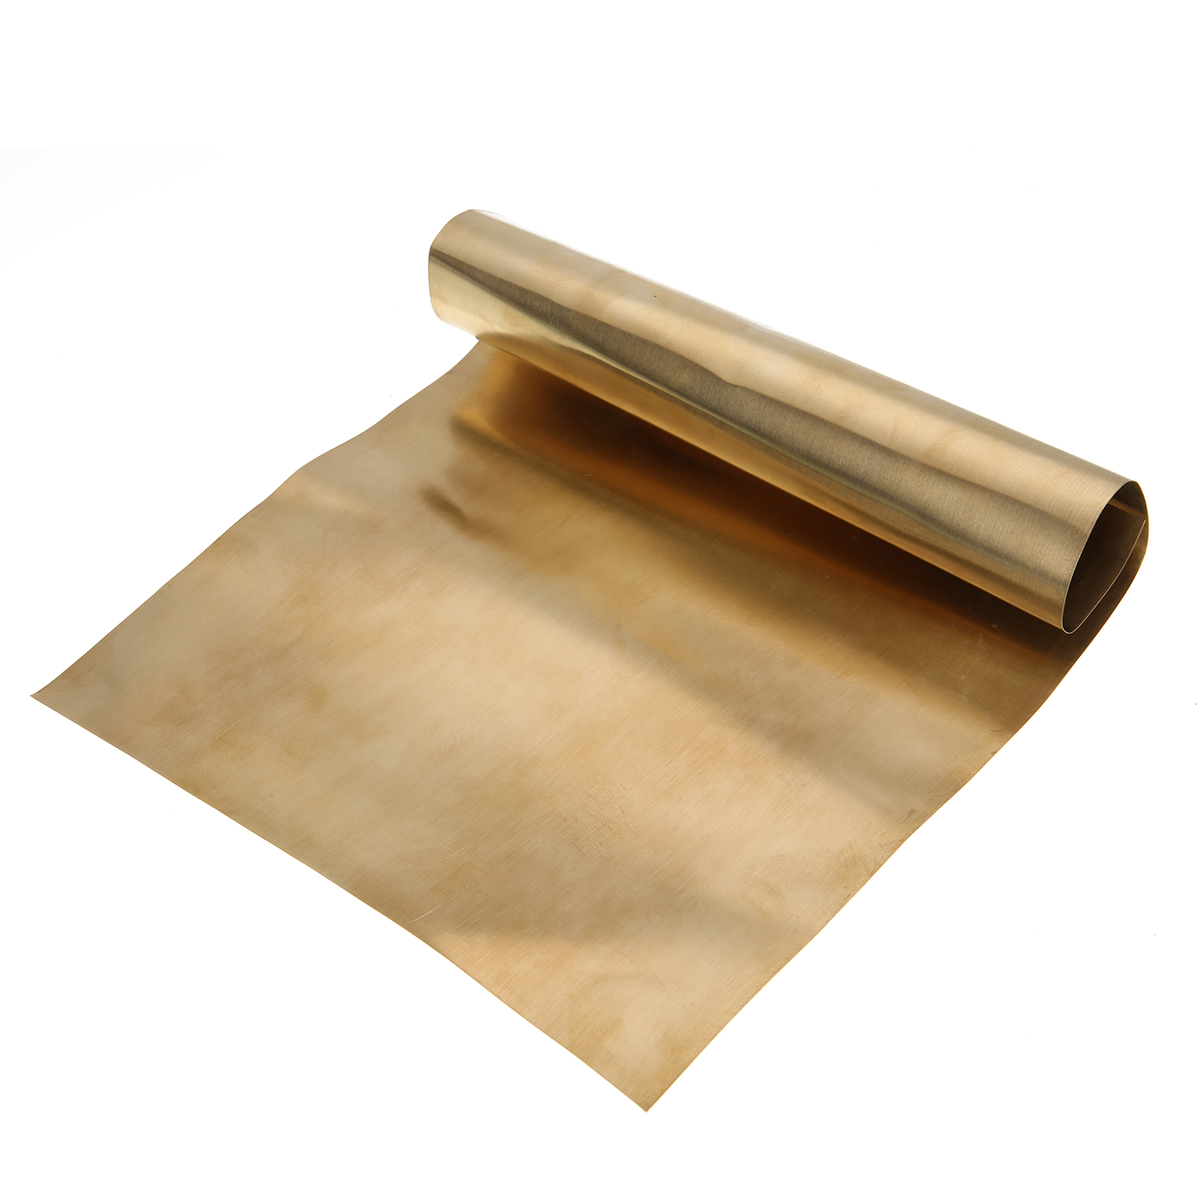 New 1pc Brass Sheet Brass Metal Thin Sheet Foil Plate Shim With Good Machinability For Metalworking 0.2mmx200mmx300mm